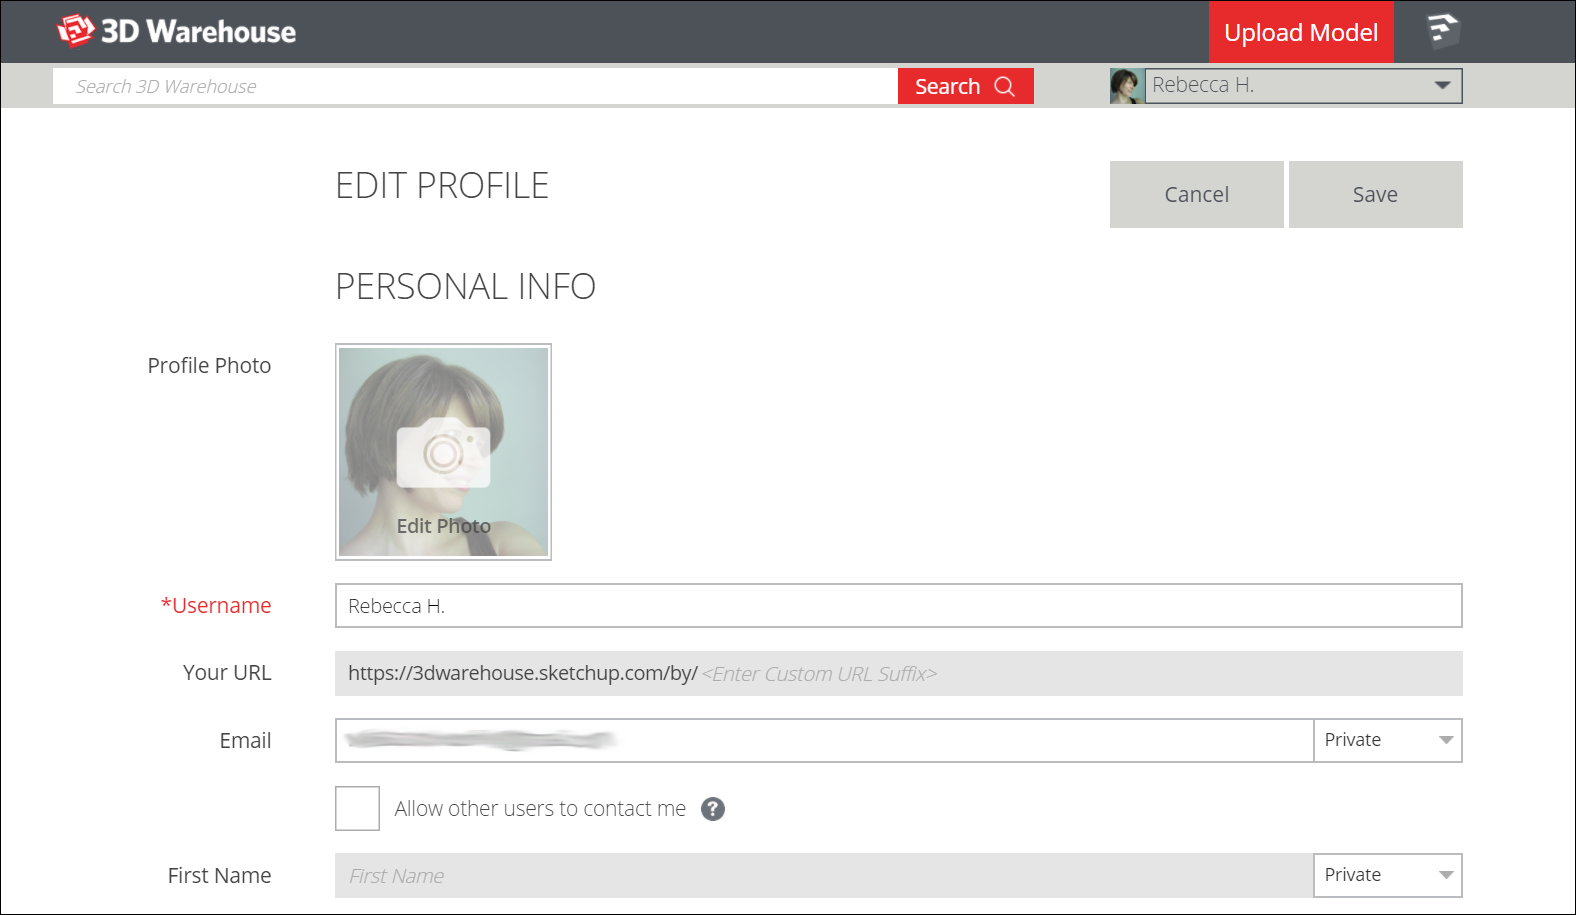 The Edit Profile page in 3D Warehouse